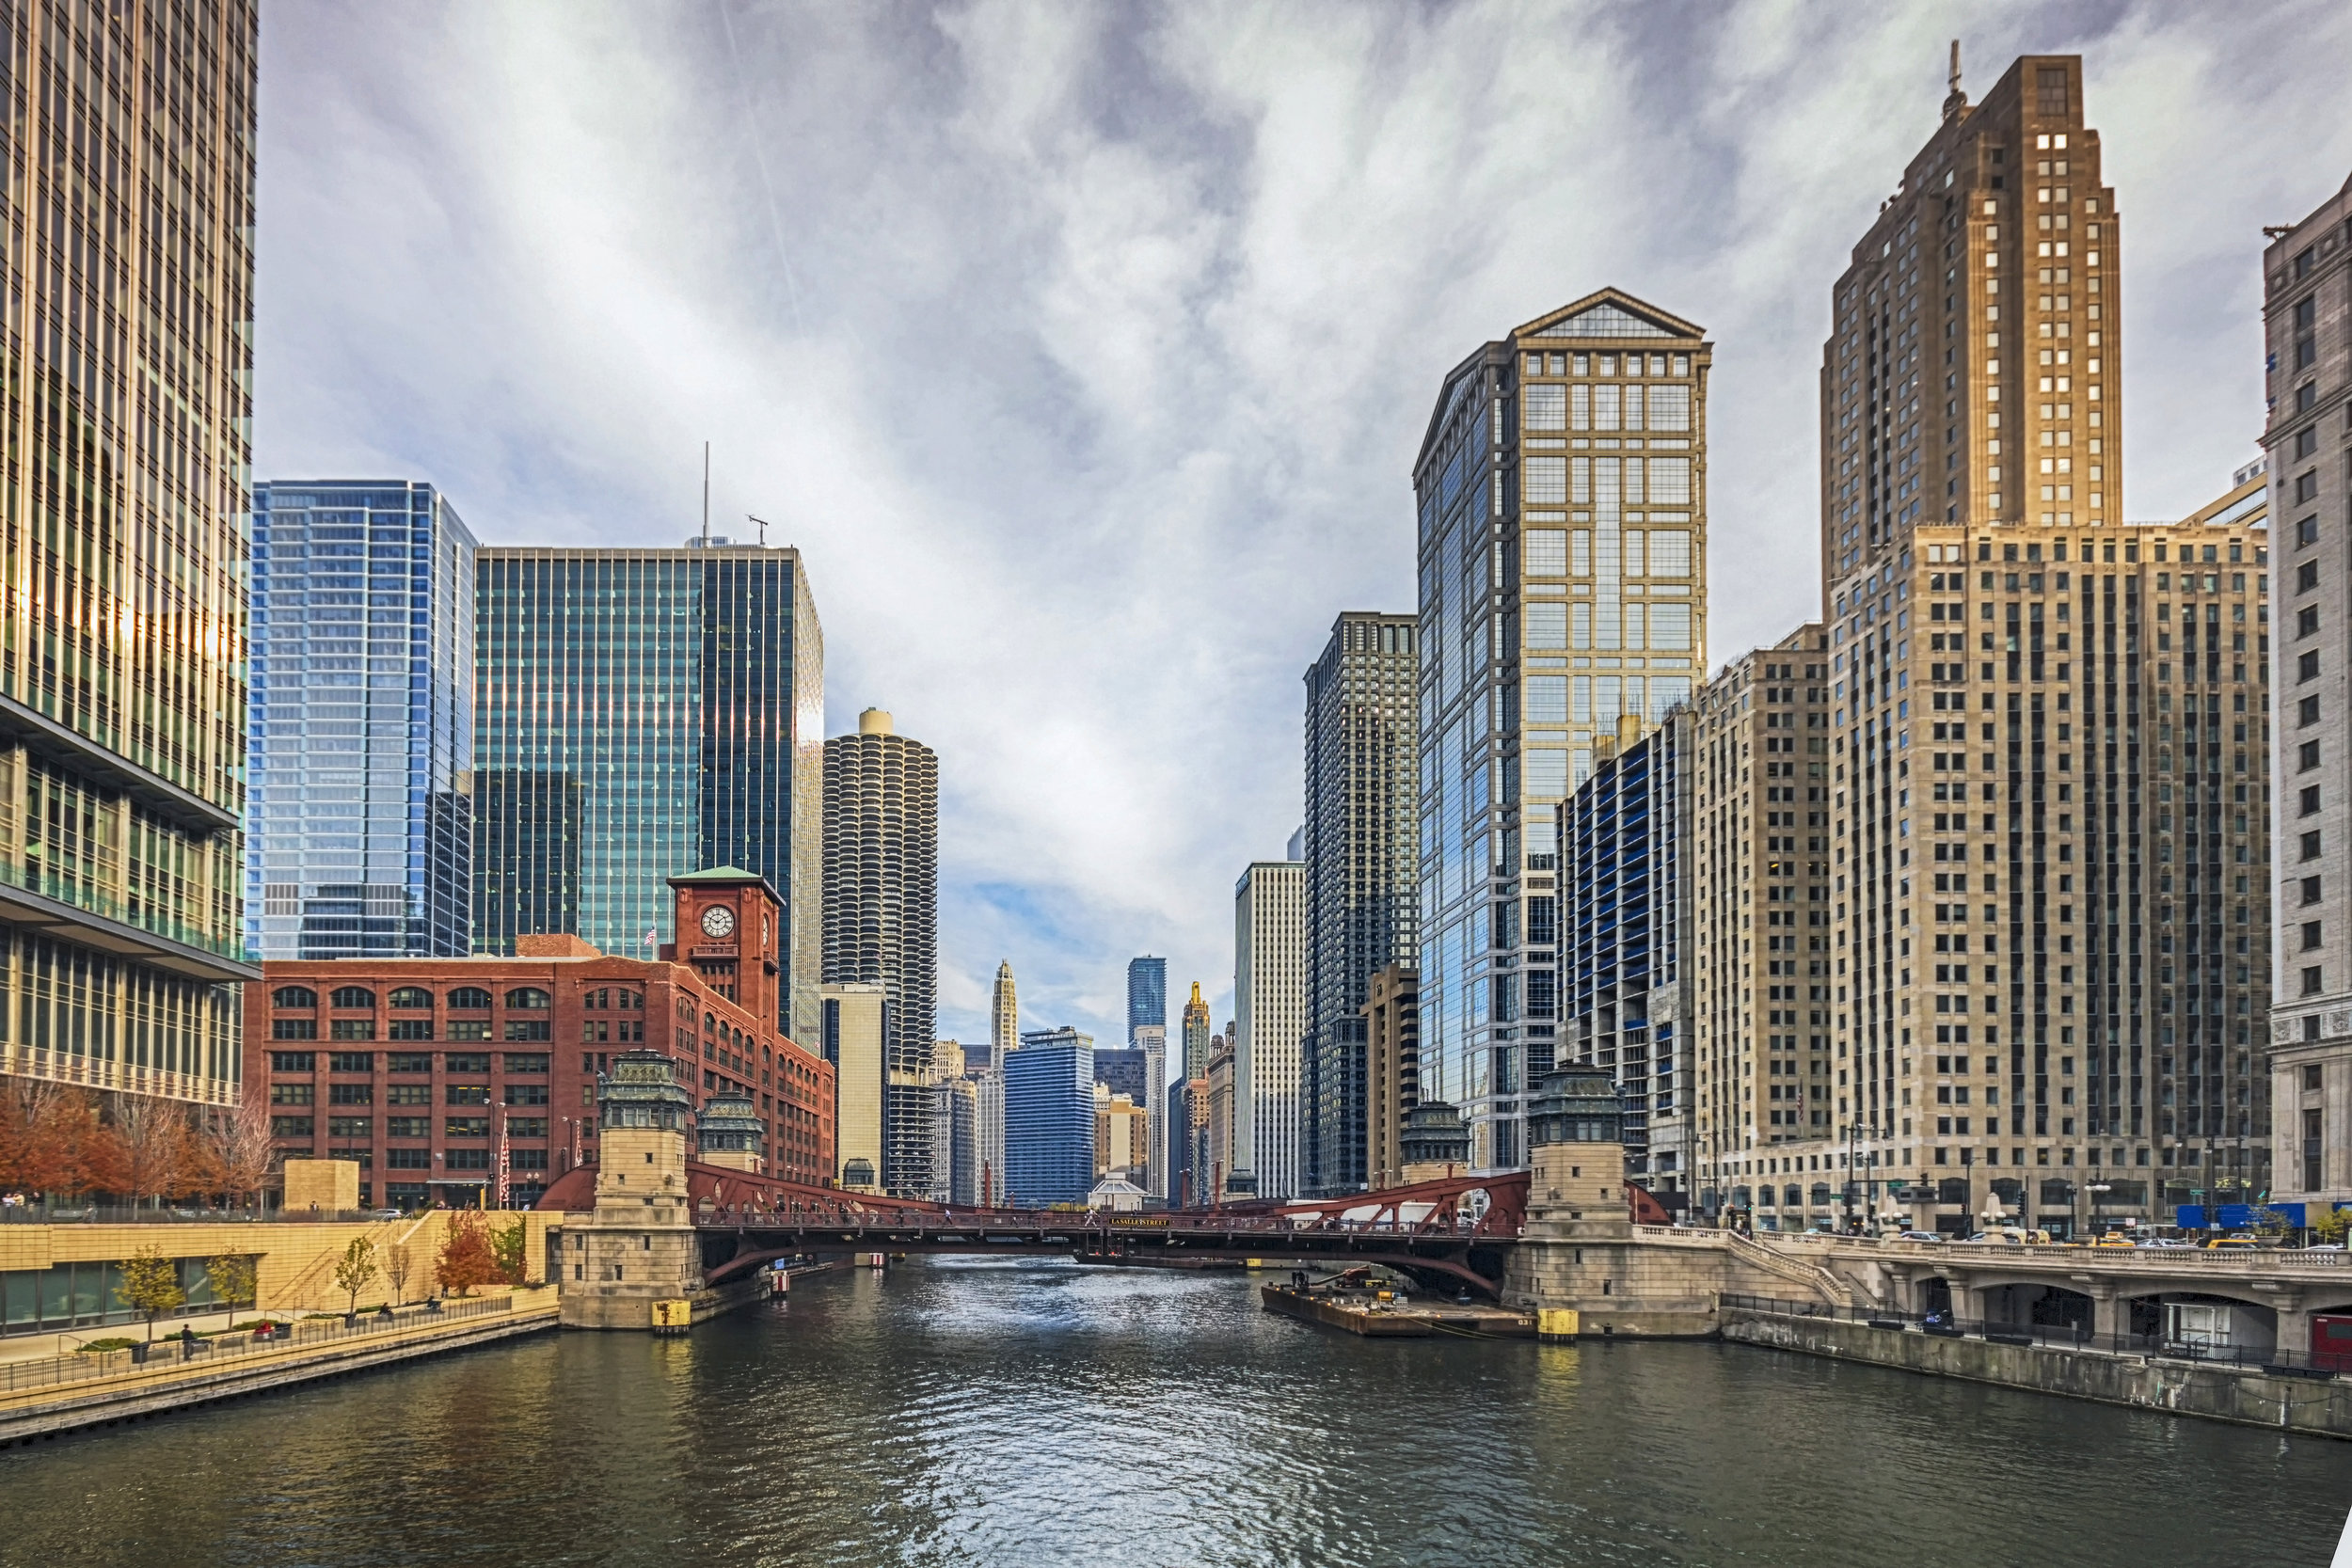 DISCOUNTED HOTEL ROOMS - We've negotiated reduced-rate hotel rooms to make your trip to Chicago affordable. Through the travel experts at onPeak, rooms at the group rate are limited and available on a first come, first served basis.